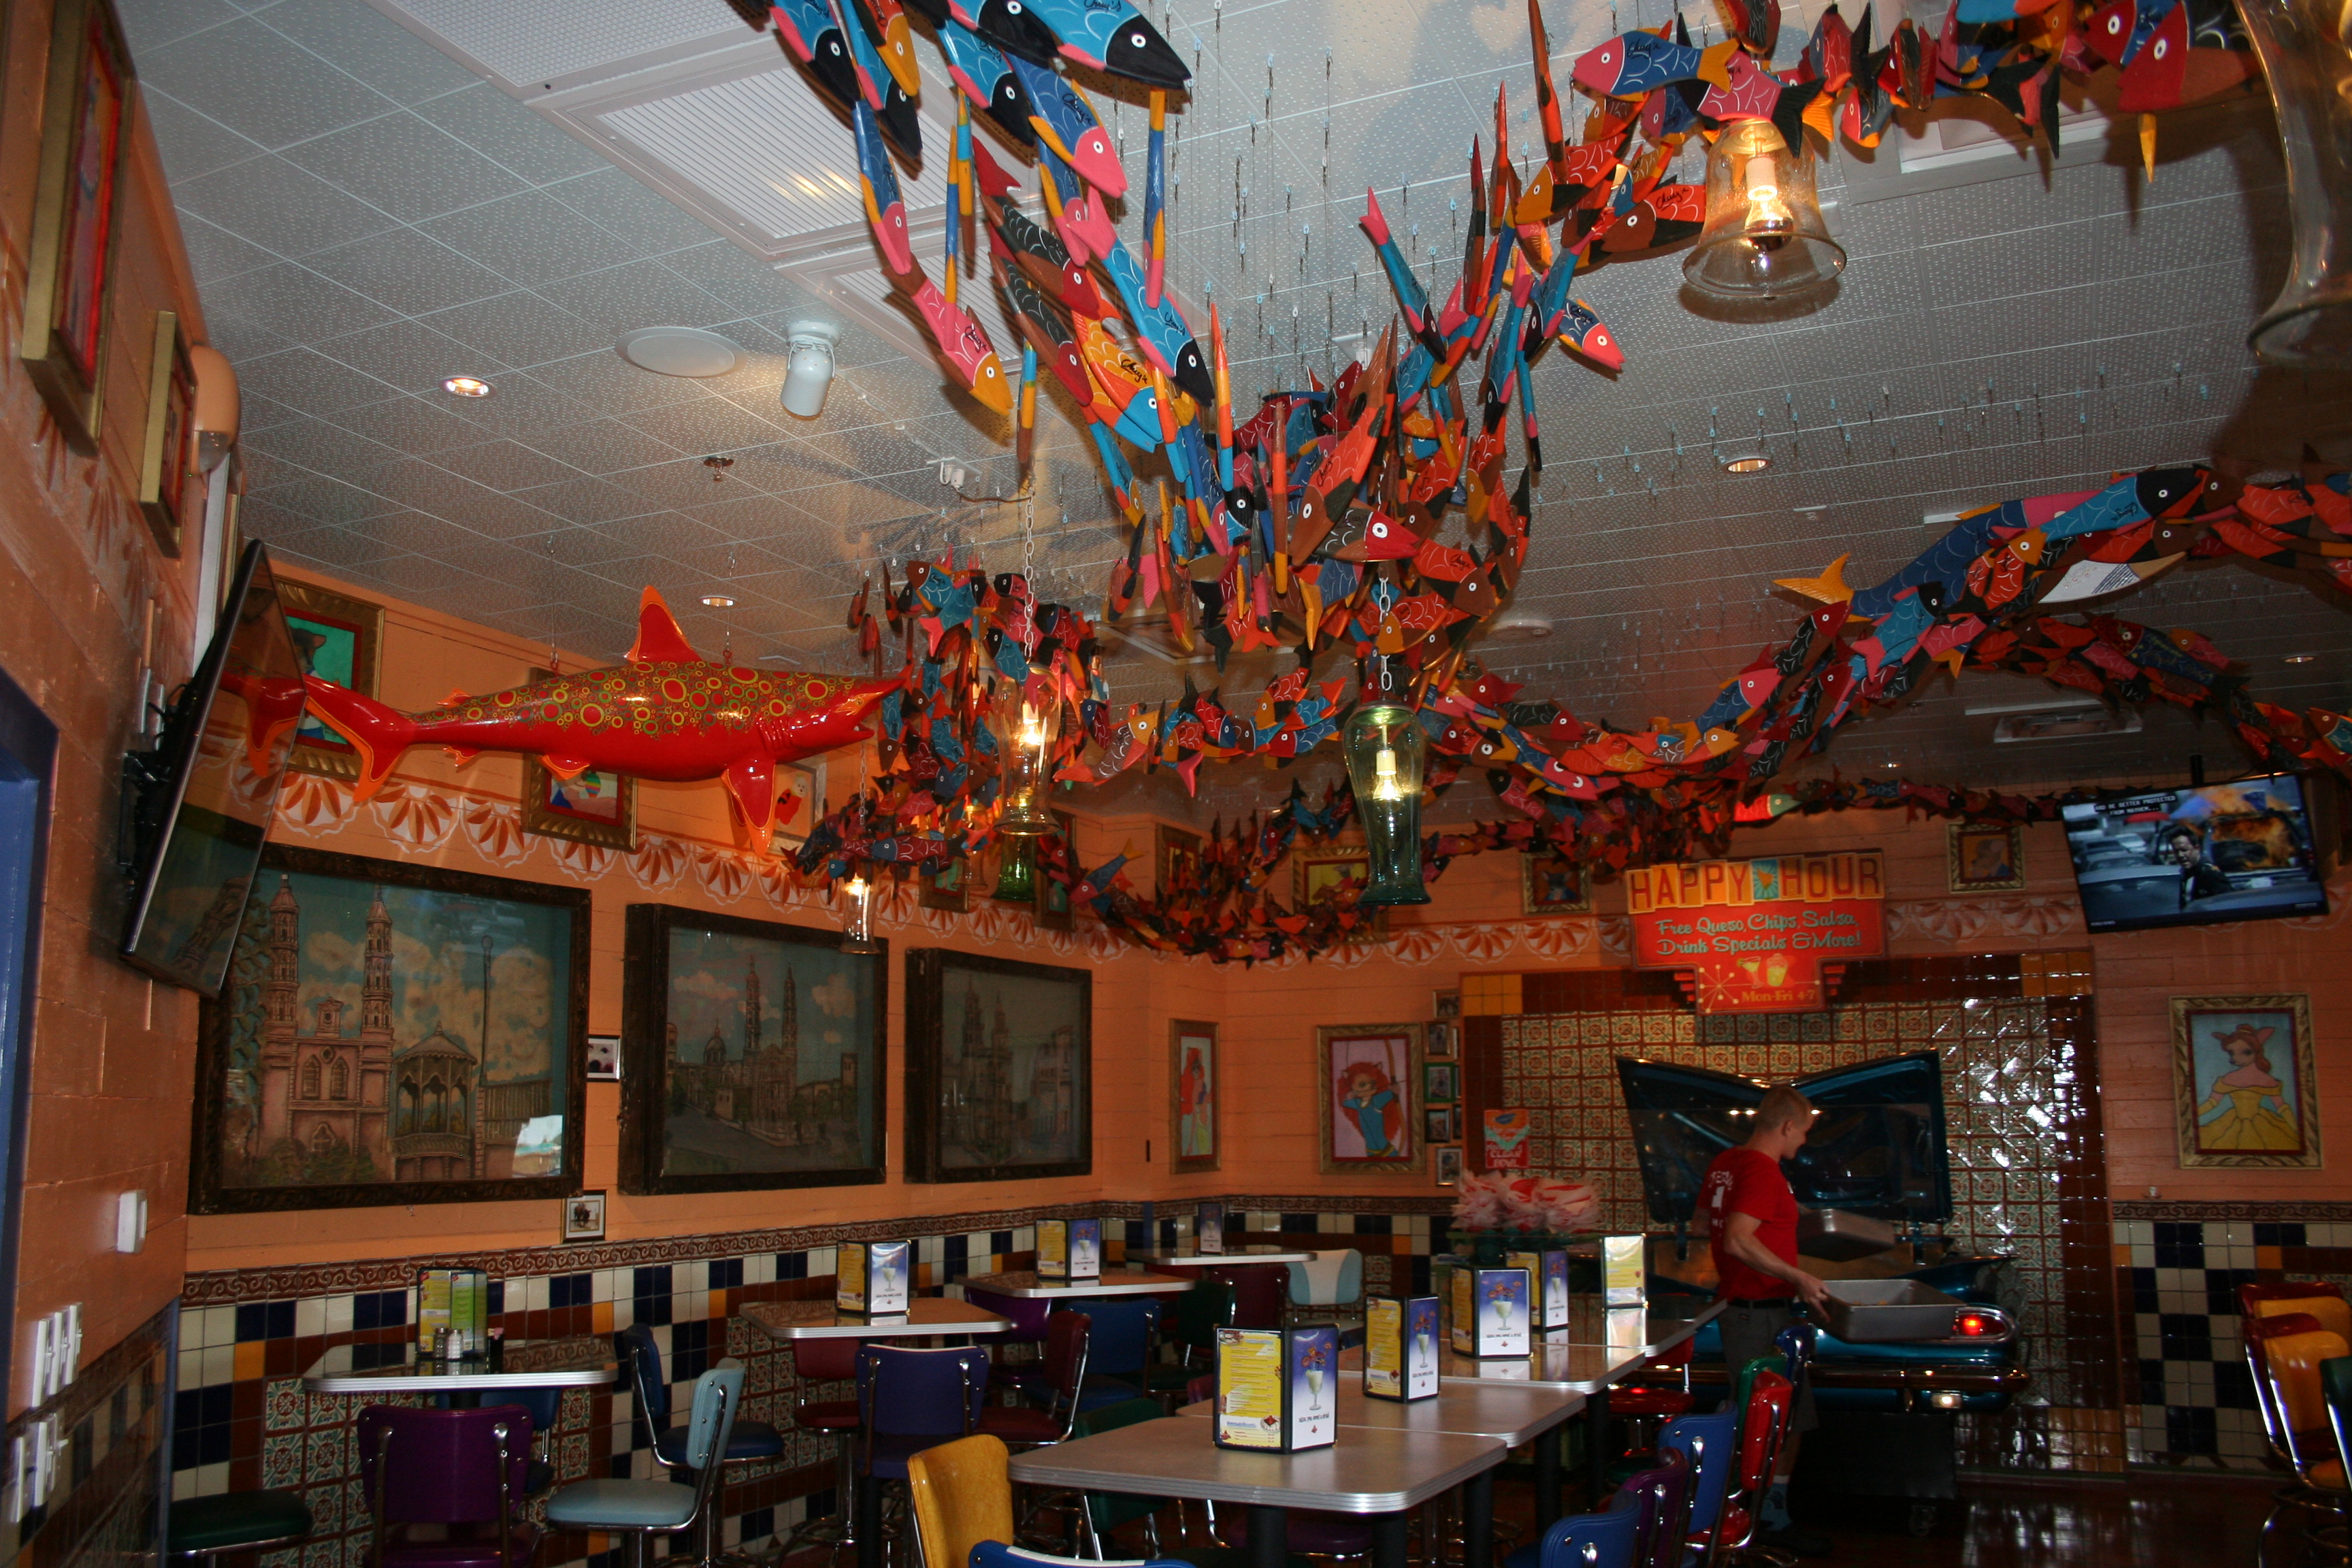 A school of wooden fish leads from the entrance to the bar and Nacho Car. (Photo: Mark Heckathorn/DC on Heels)